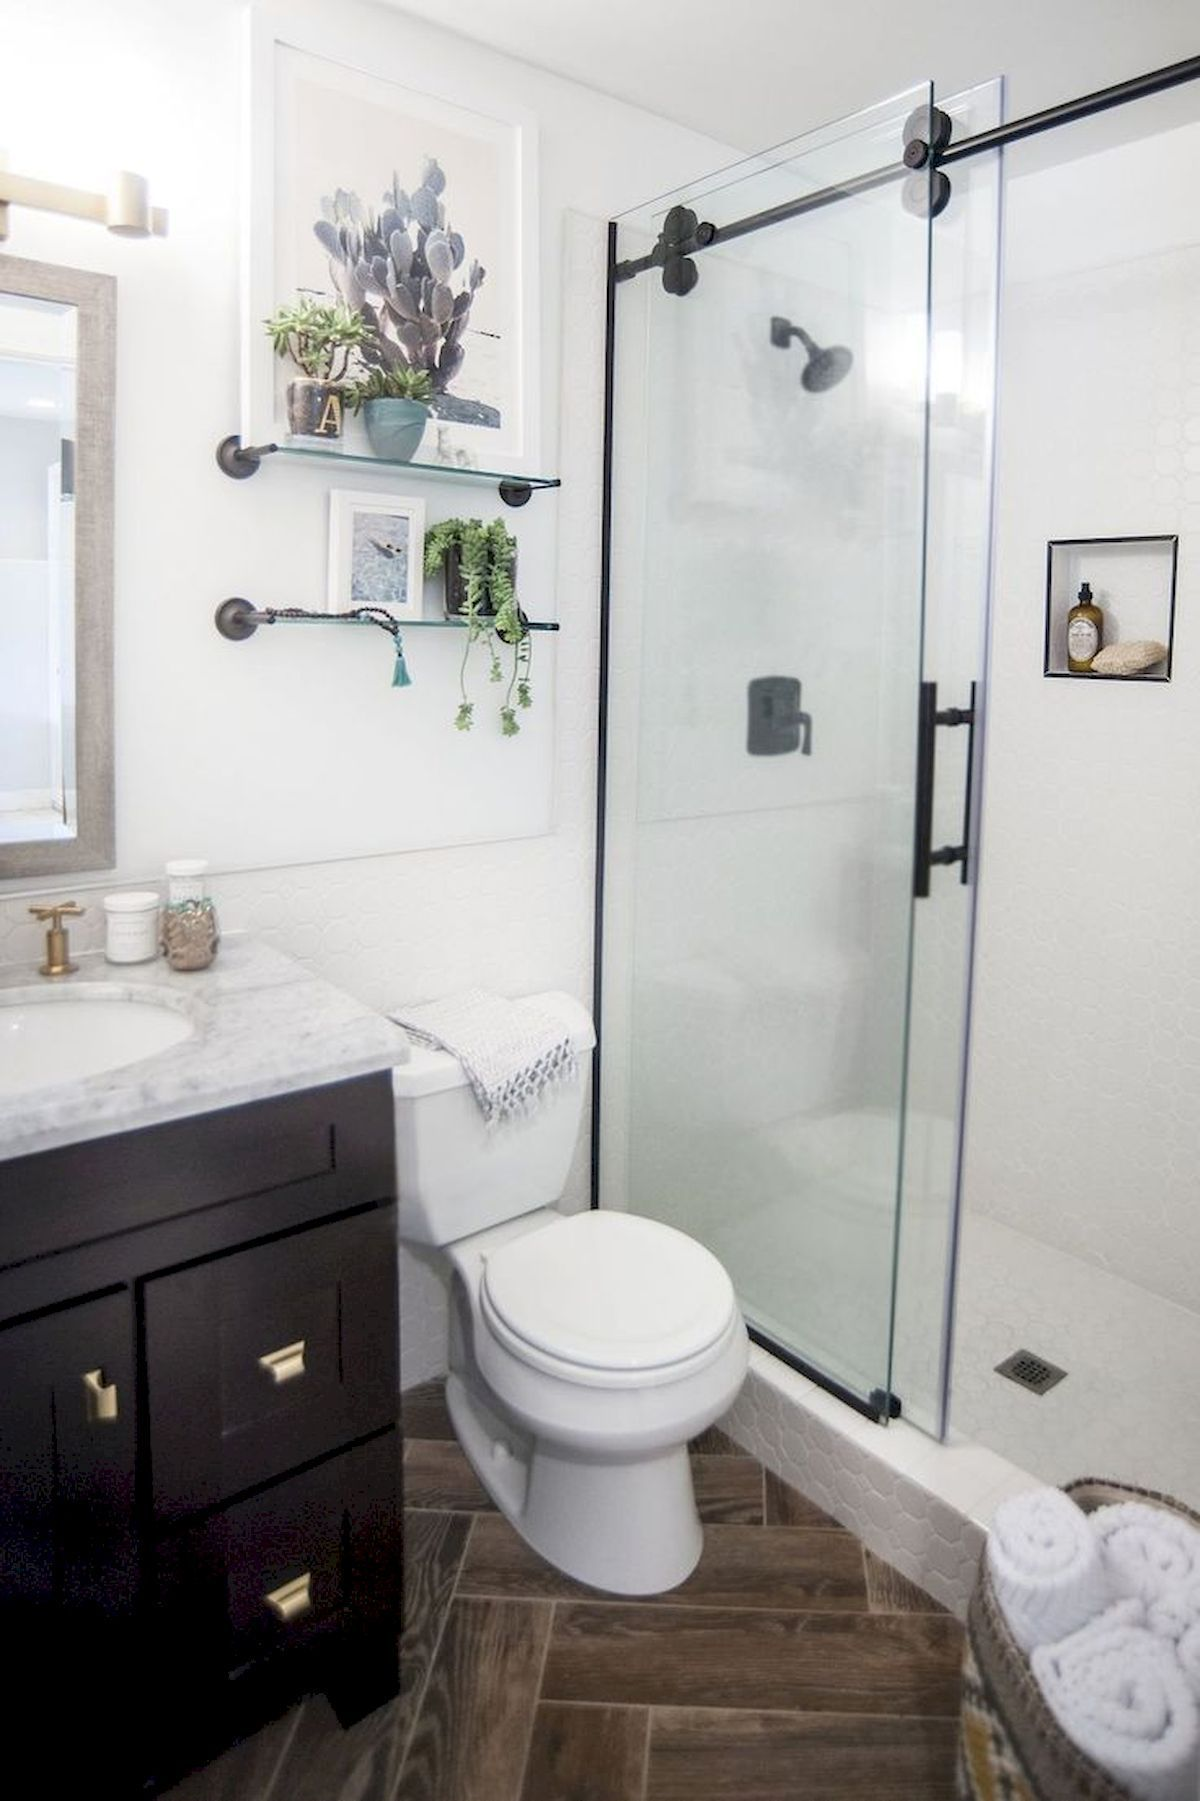 54 Amazing Small Bathroom Remodel Ideas (33 in 2019 ... on Amazing Small Bathrooms  id=54425